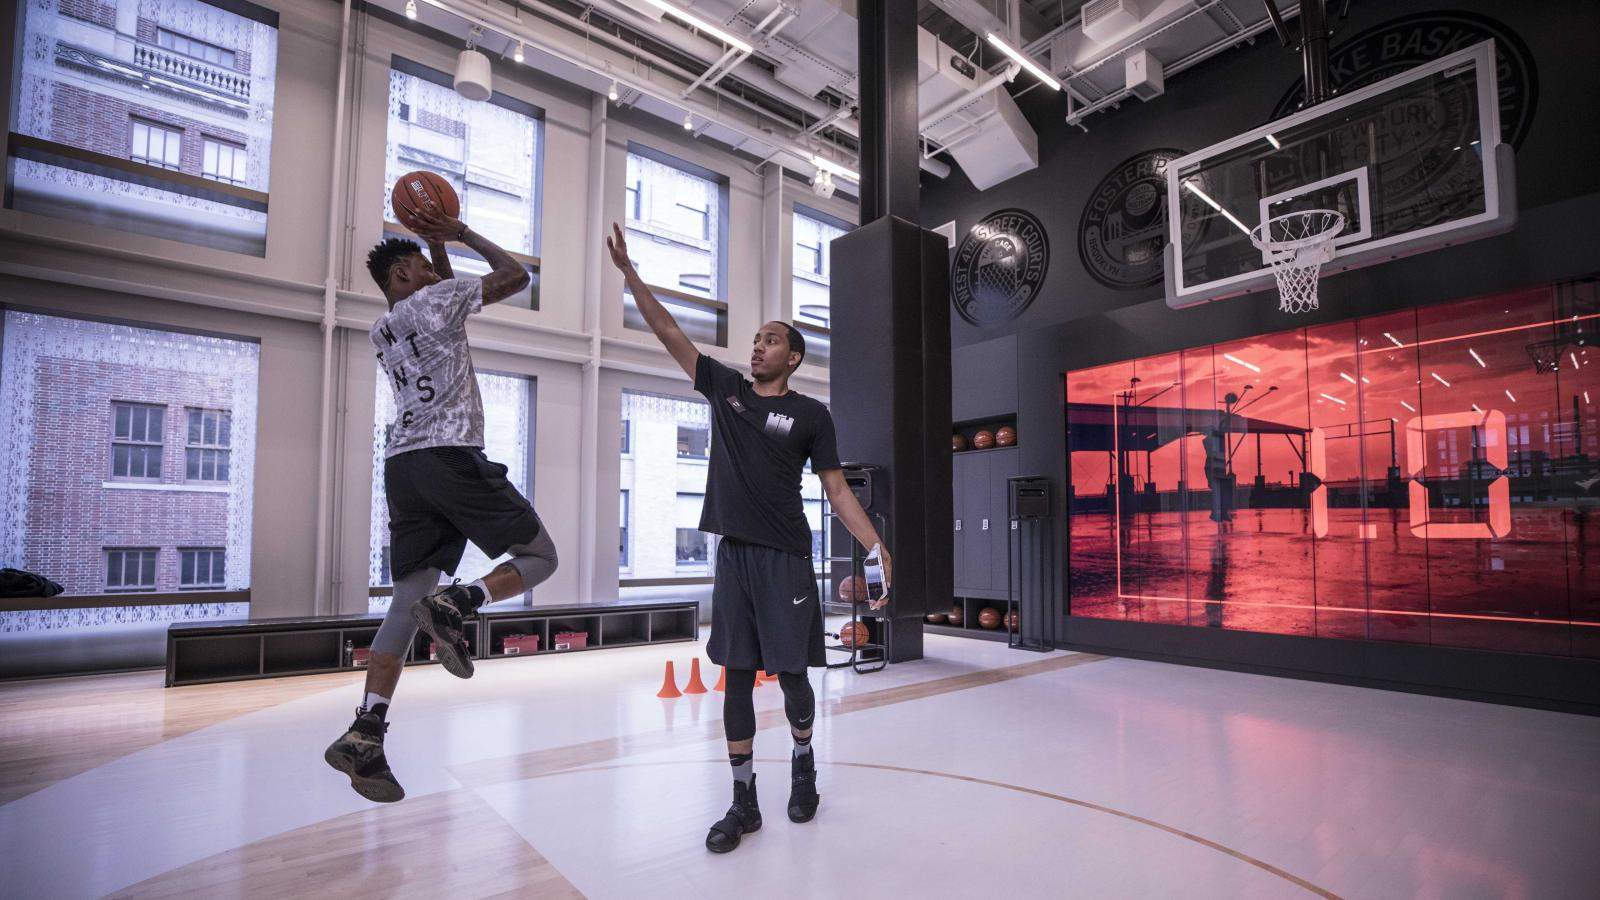 Nike S New Store In New York Has A Basketball Court Where You Can Test Drive Their Shoes Quartz